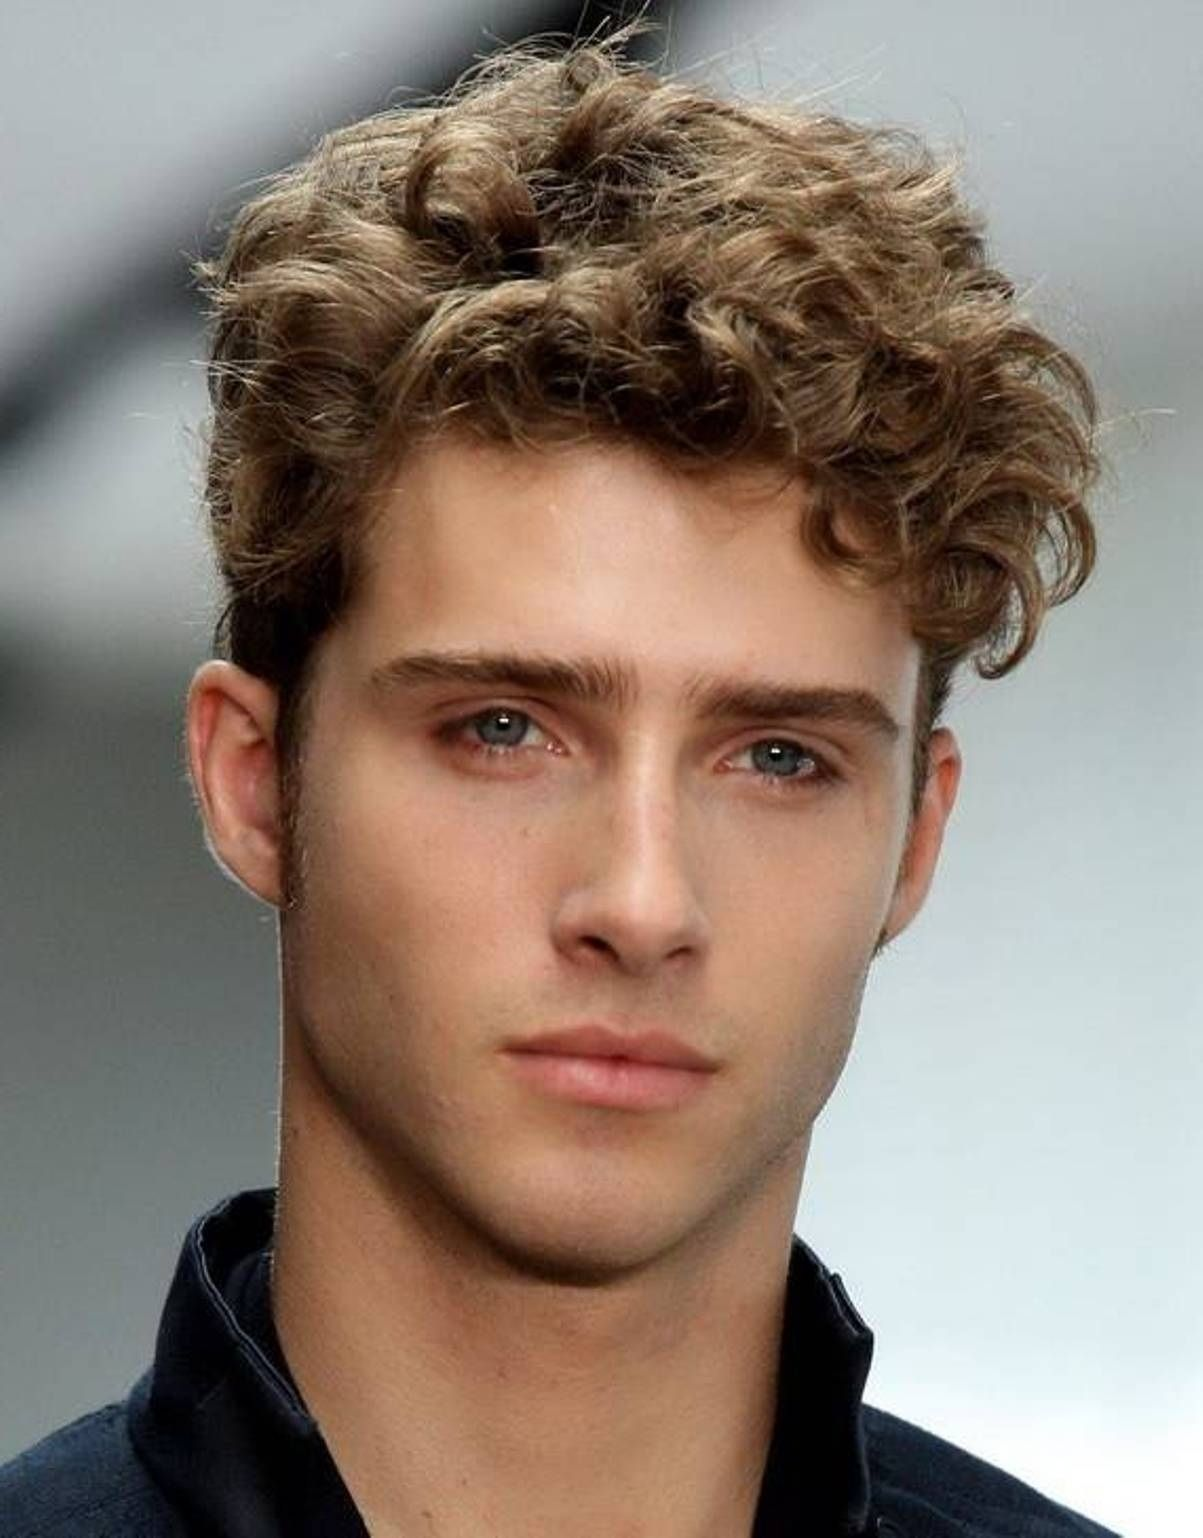 Haircuts for men with thick curly hair very short hairstyles men thick hair hd mens curly hairstyles curly